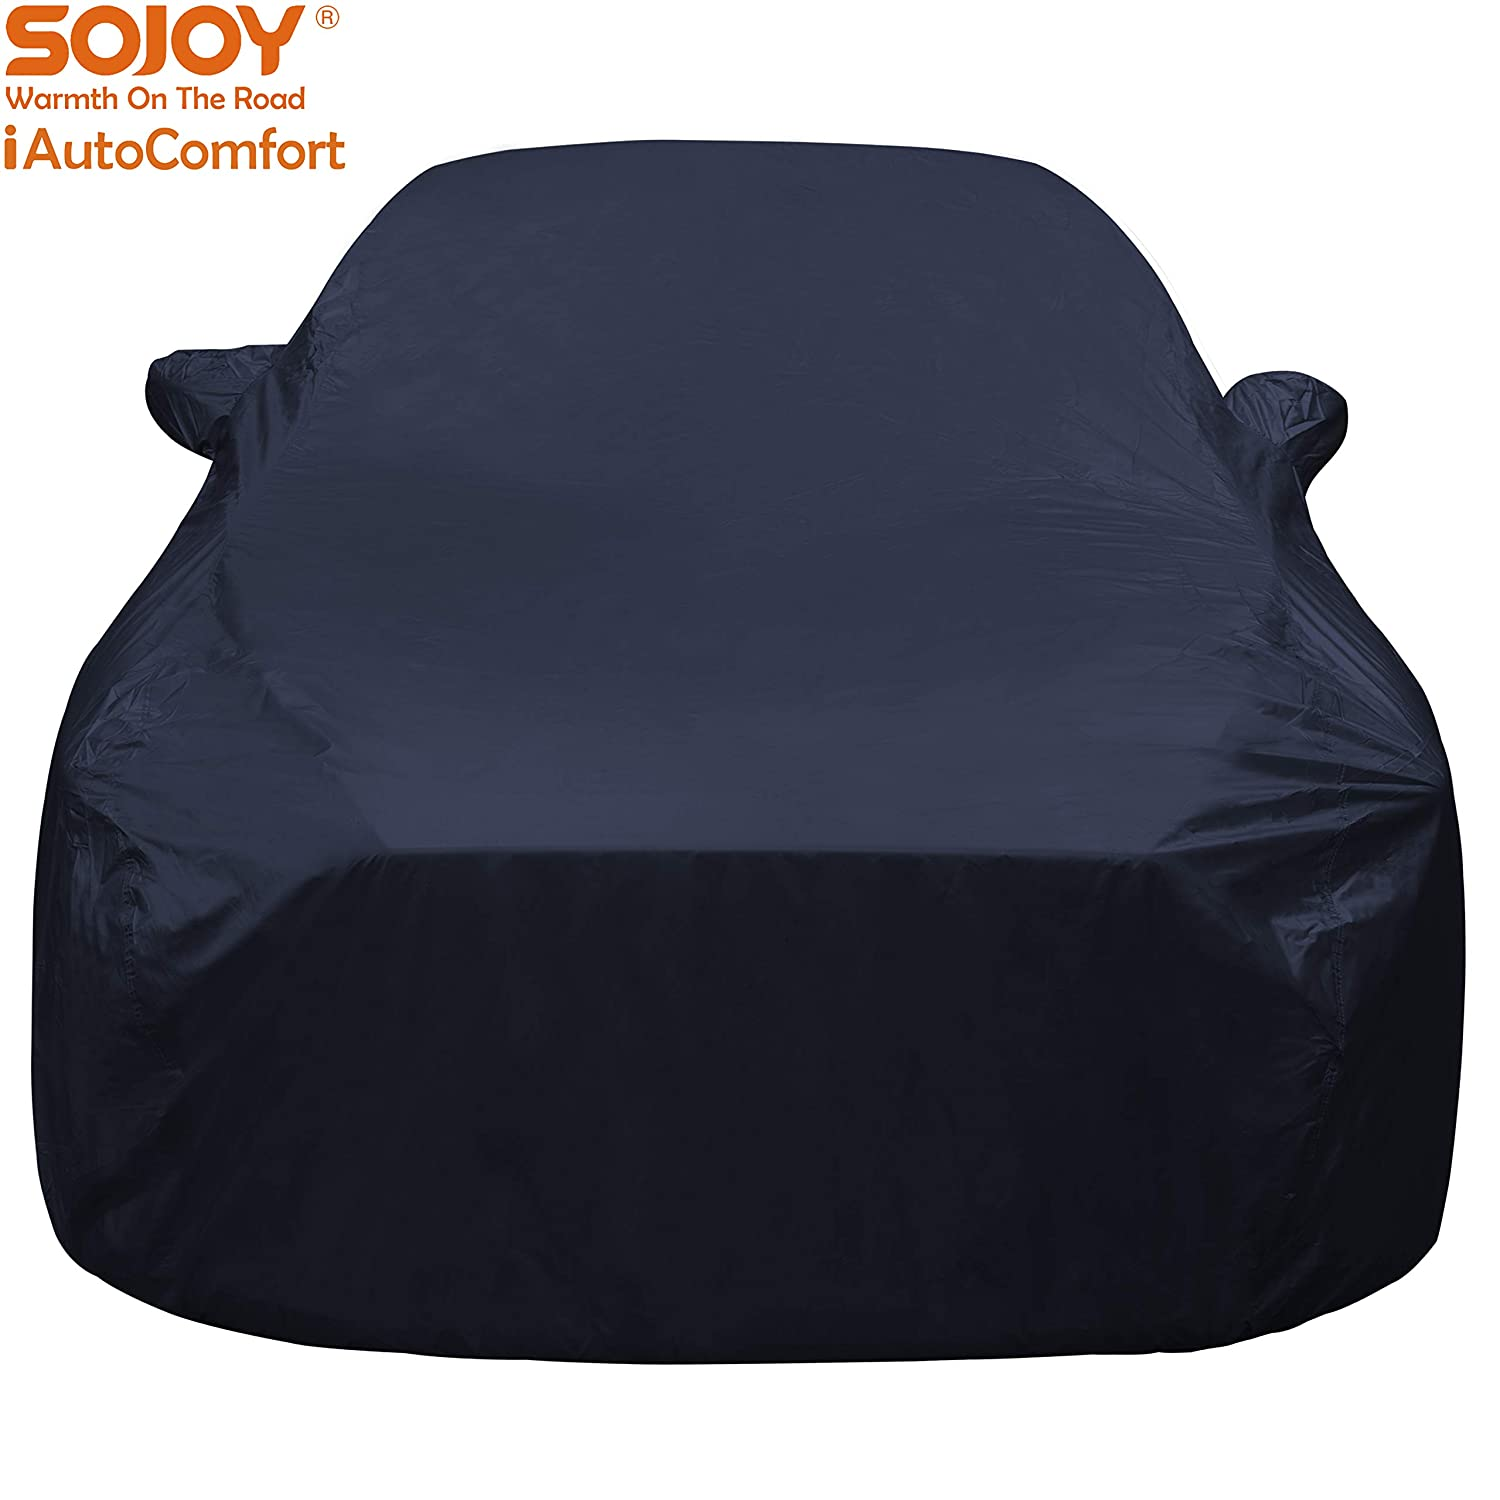 Sojoy Car Cover for Sedan Coupe XXL+ Hatchback Cover in Rain//Snow//Heat Waterproof//Windproof//Dustproof//Scratch Resistant//Outdoor UV Protection Full Car Cover SUV 215x85x60 in.